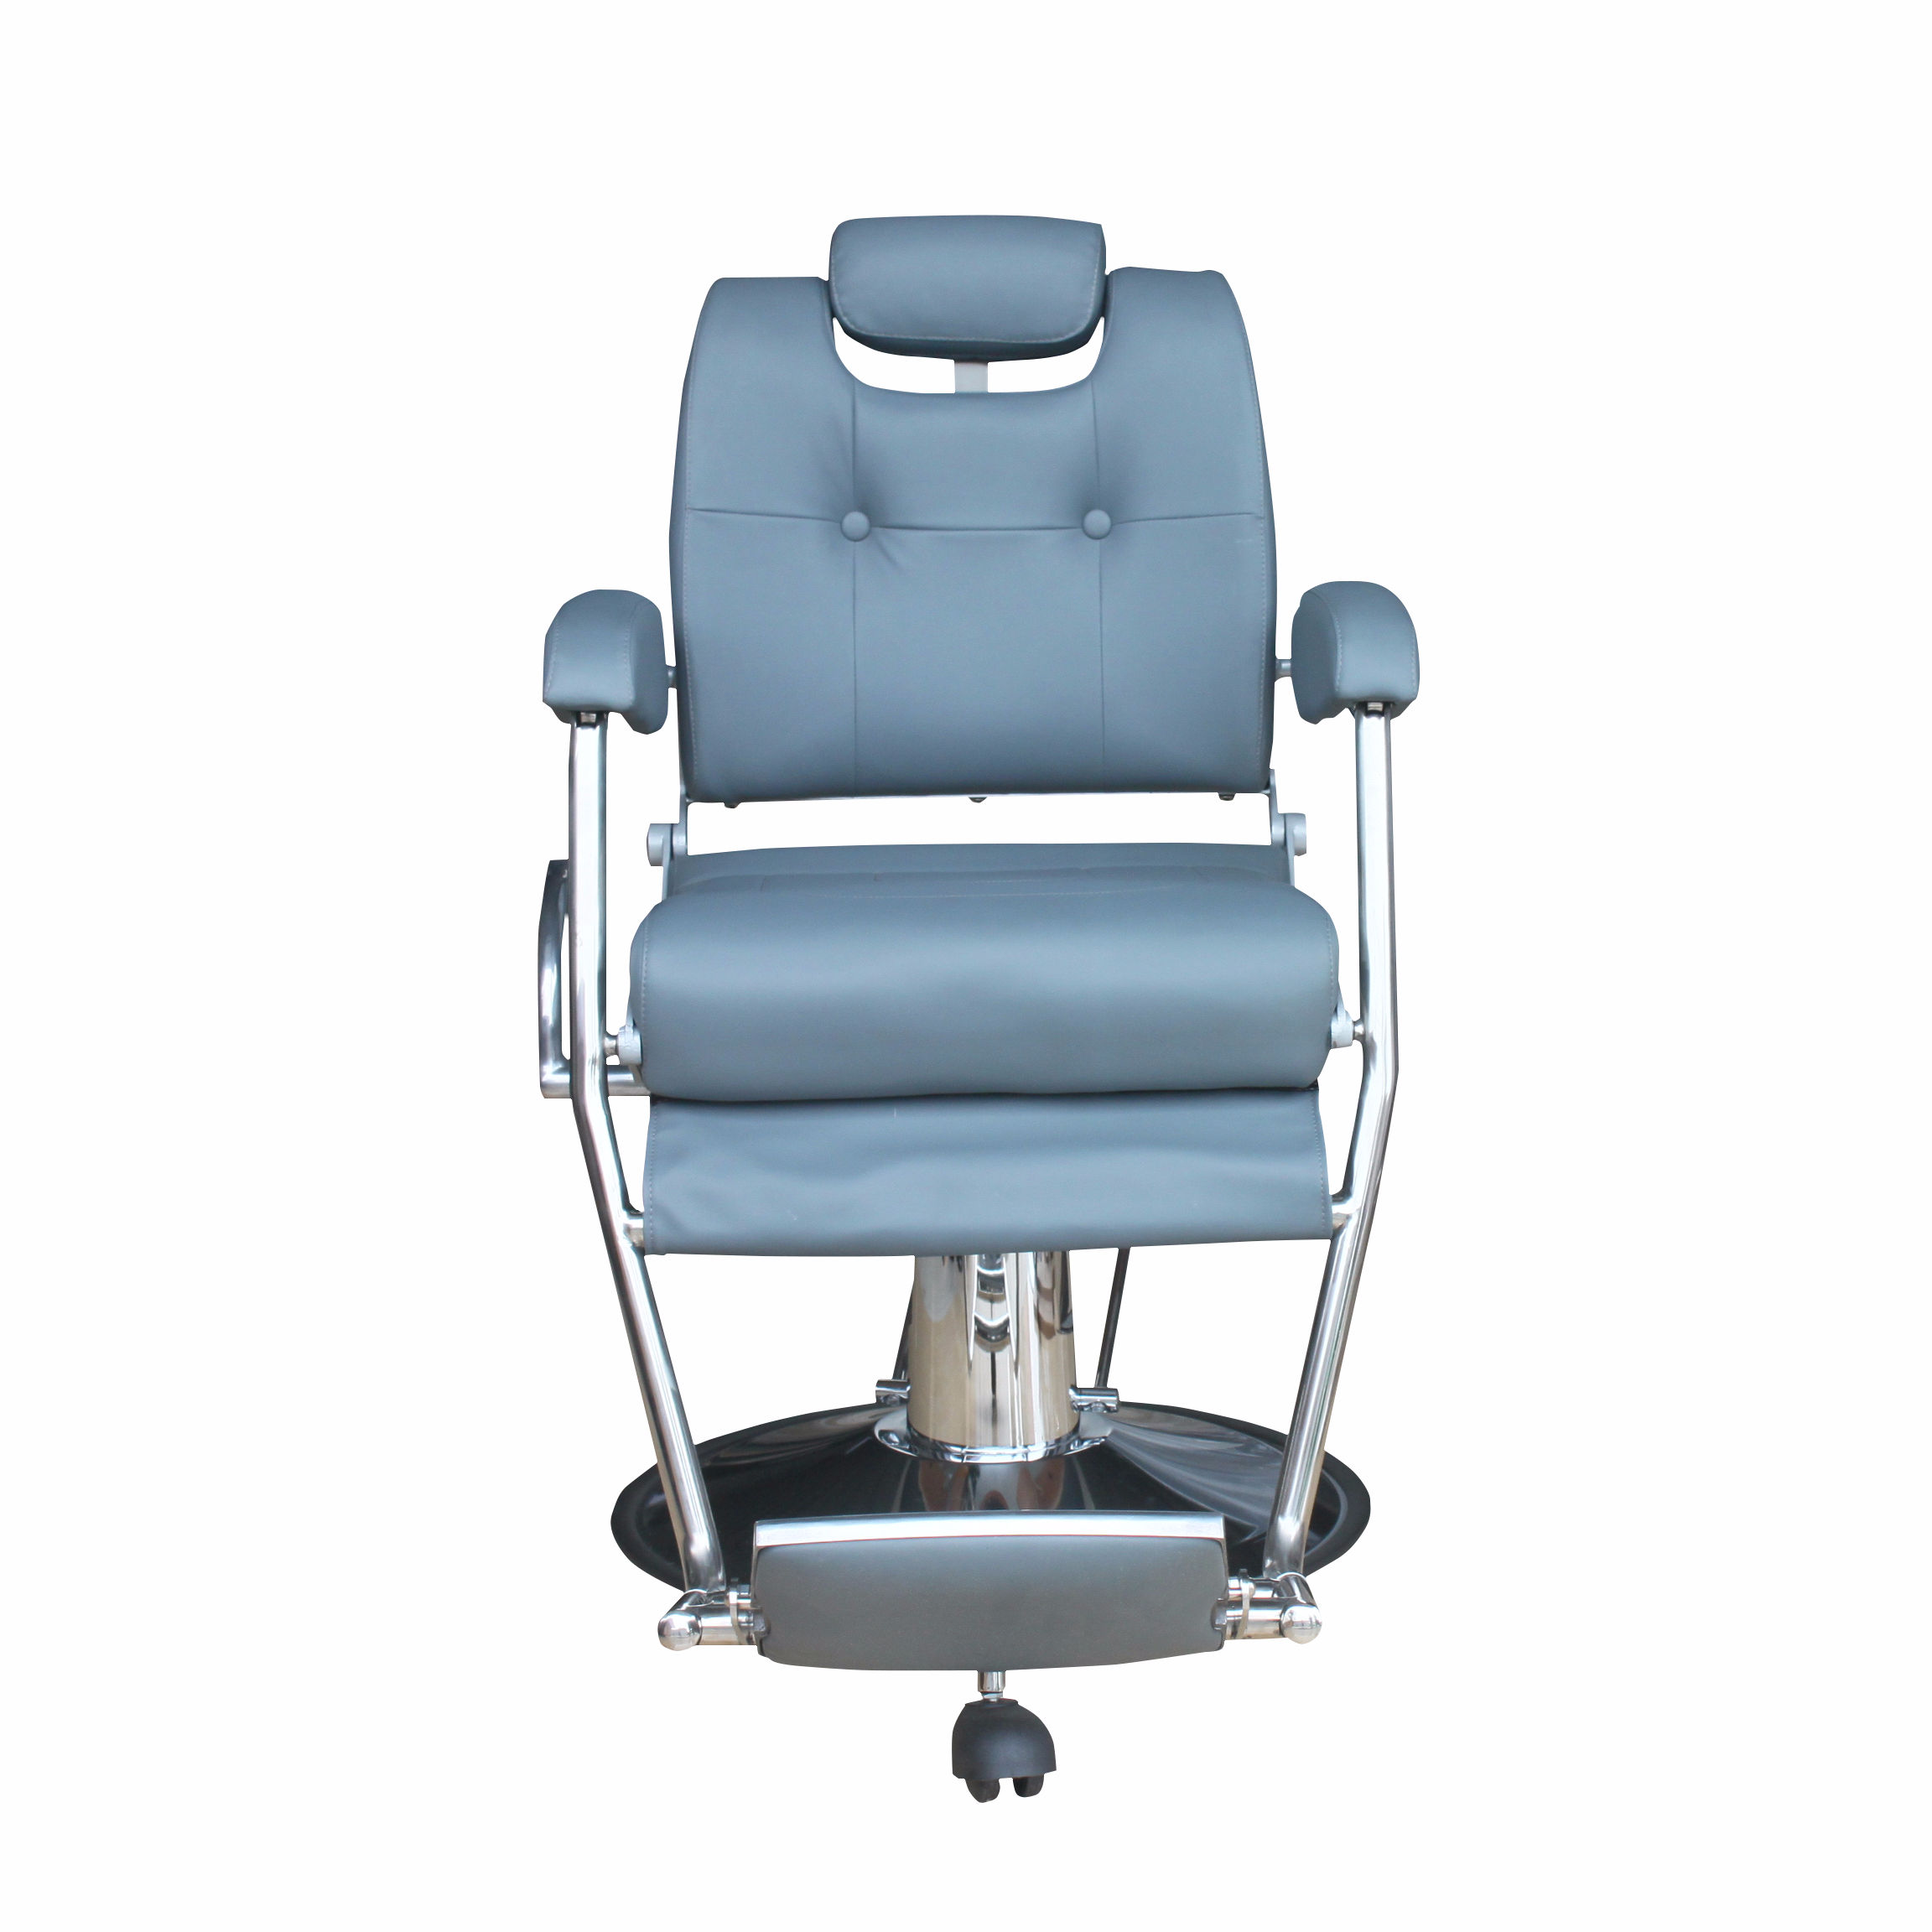 New portable wholesale modern good price beauty salon hair cutting back reclining barber chair